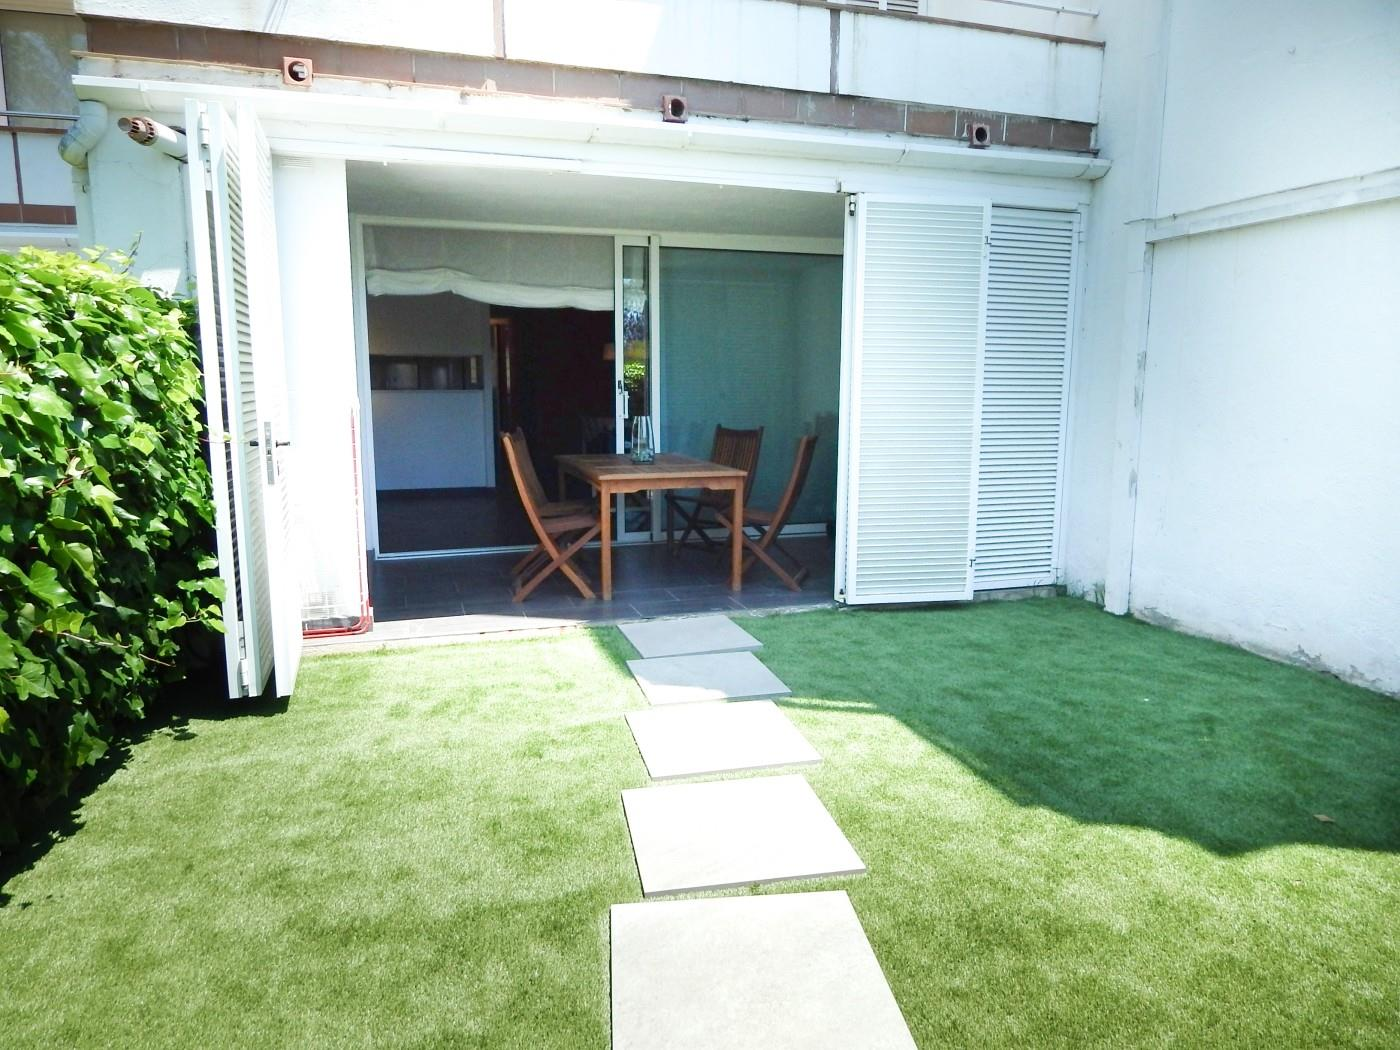 Rent Apartment with Swimming pool in Platja d'Aro - Gardenies Planta Baixa Piscina i Wifi - 4